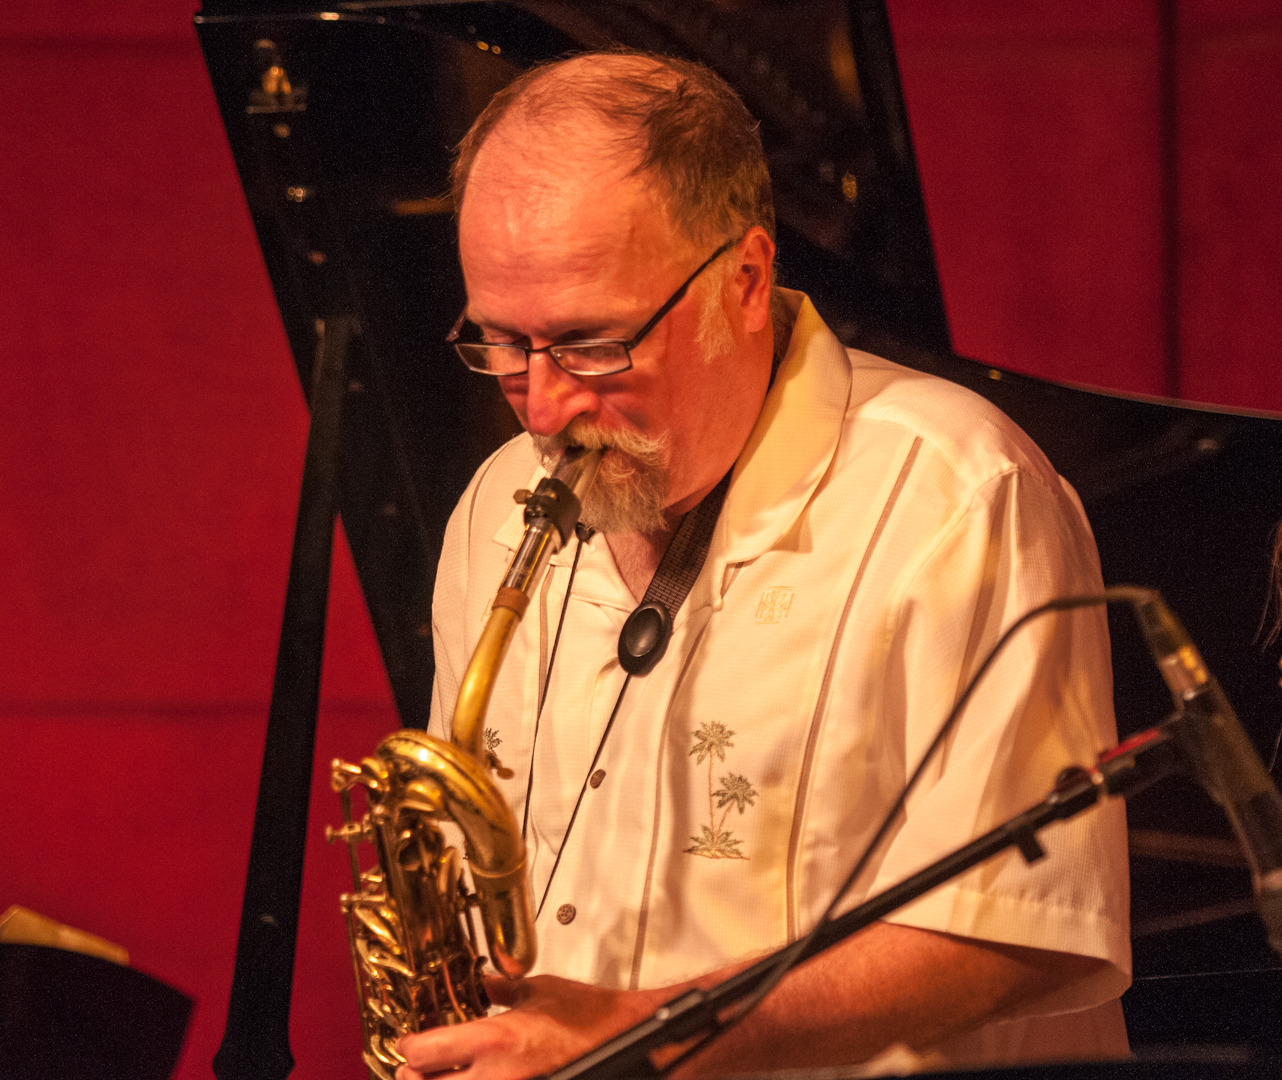 Charlie Kohlhase with the Either/Orchestra at the Jazz Standard